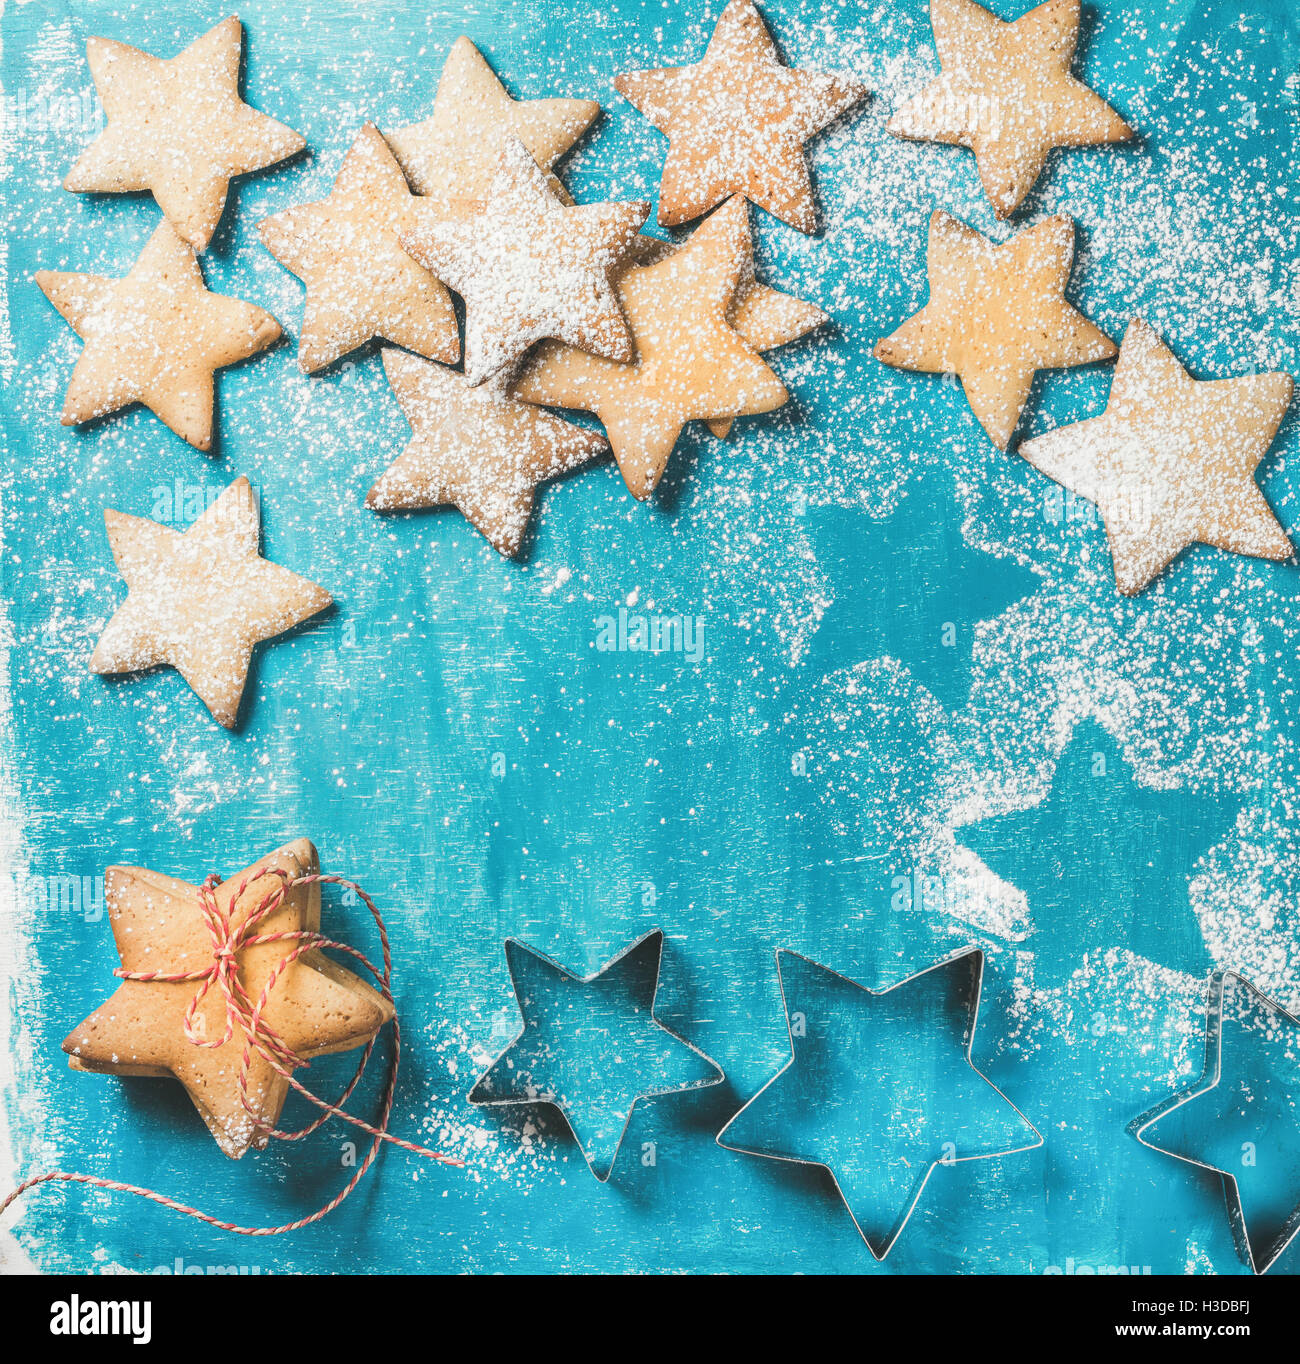 Christmas gingerbread cookies sprinkled with sugar powder on blue background - Stock Image